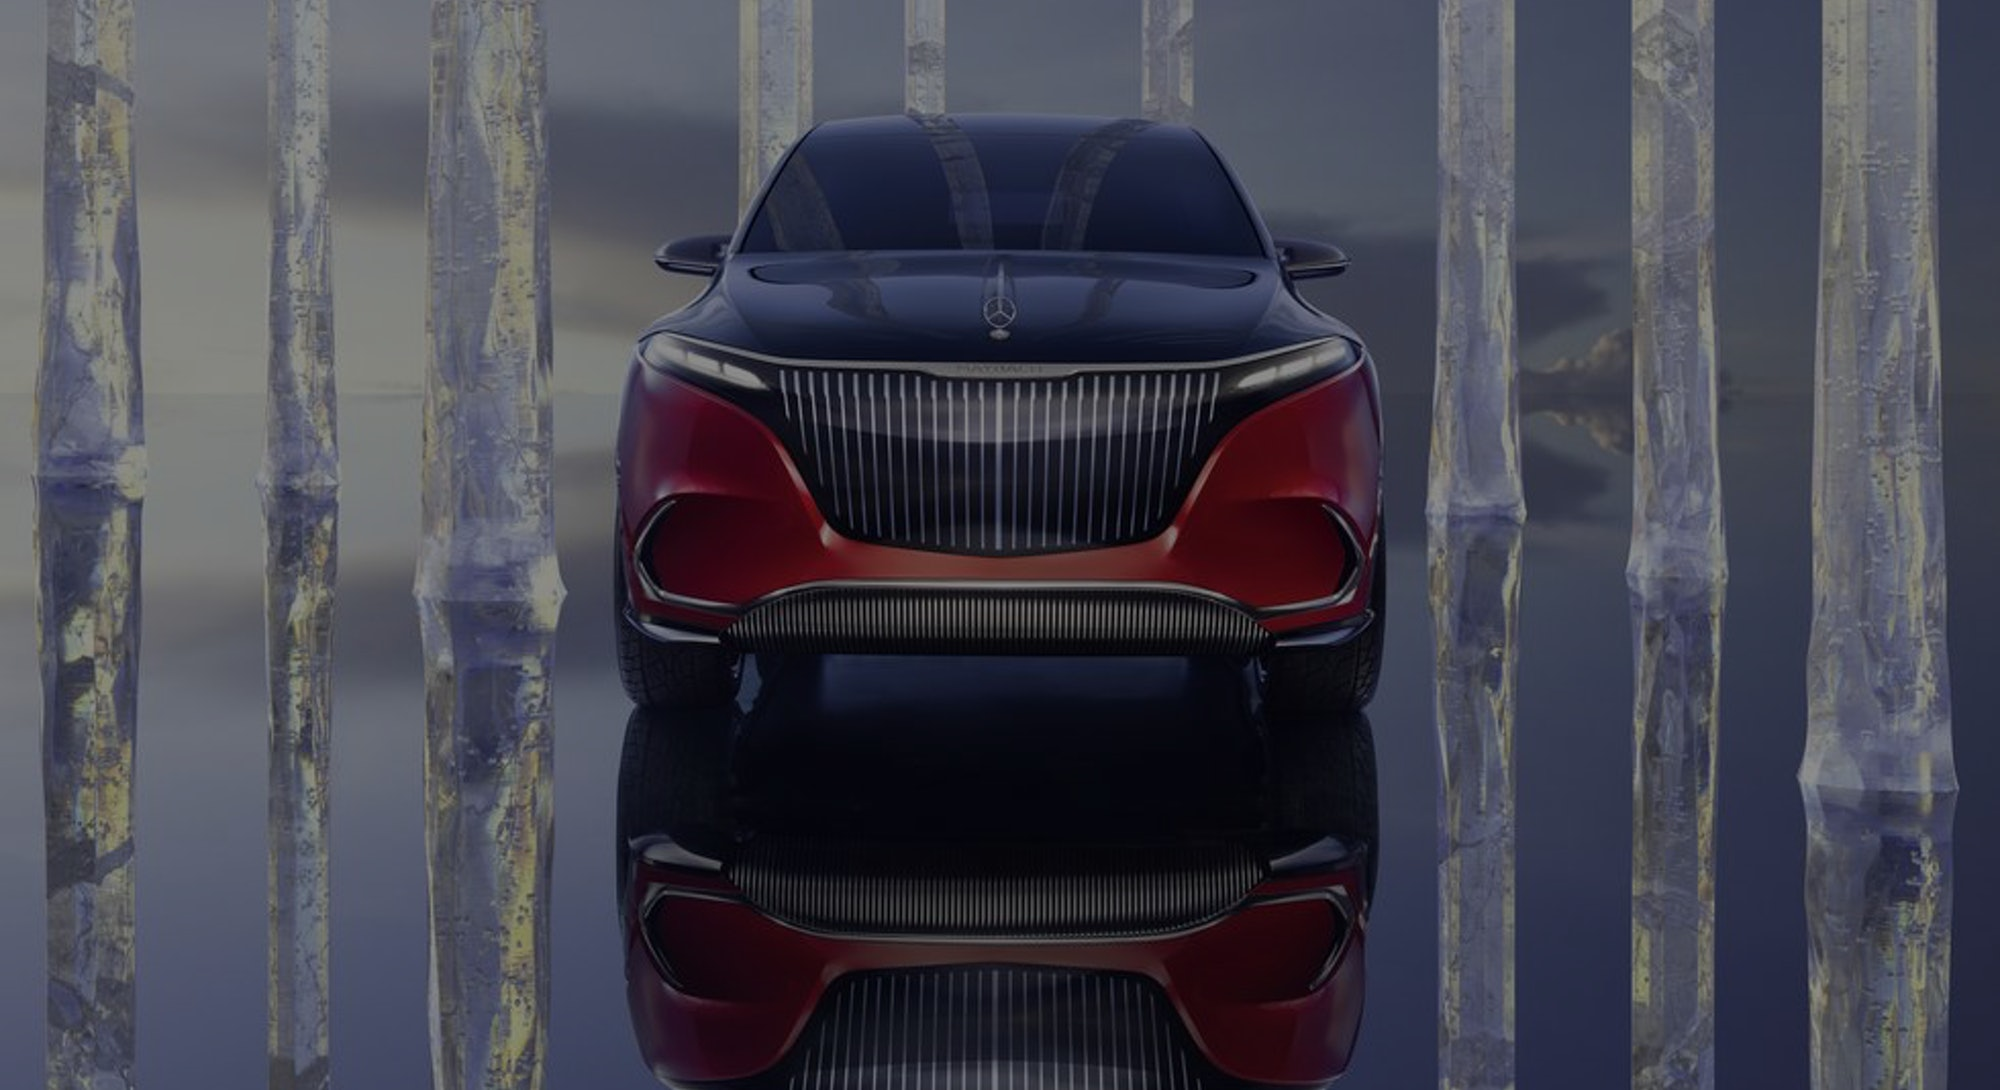 Mercedes Benz electric Maybach concept SUV. Electric cars. Electric vehicles. EVs.